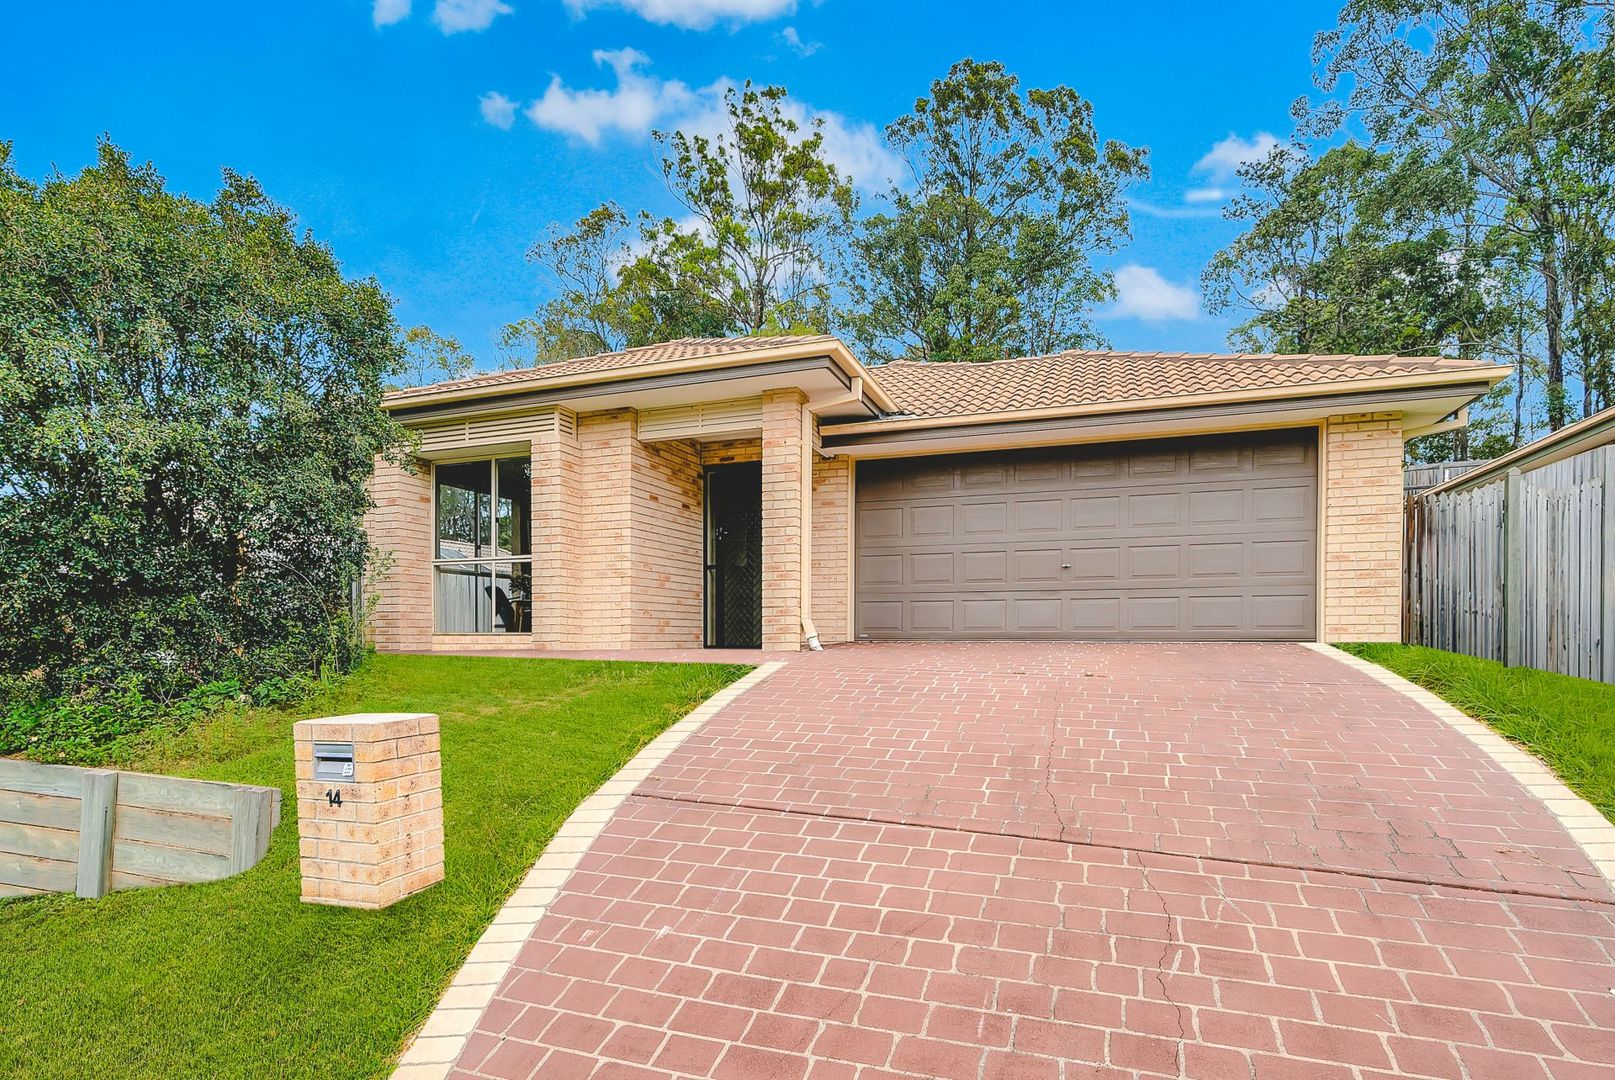 14 Purlingbrook Street, Upper Coomera QLD 4209, Image 1